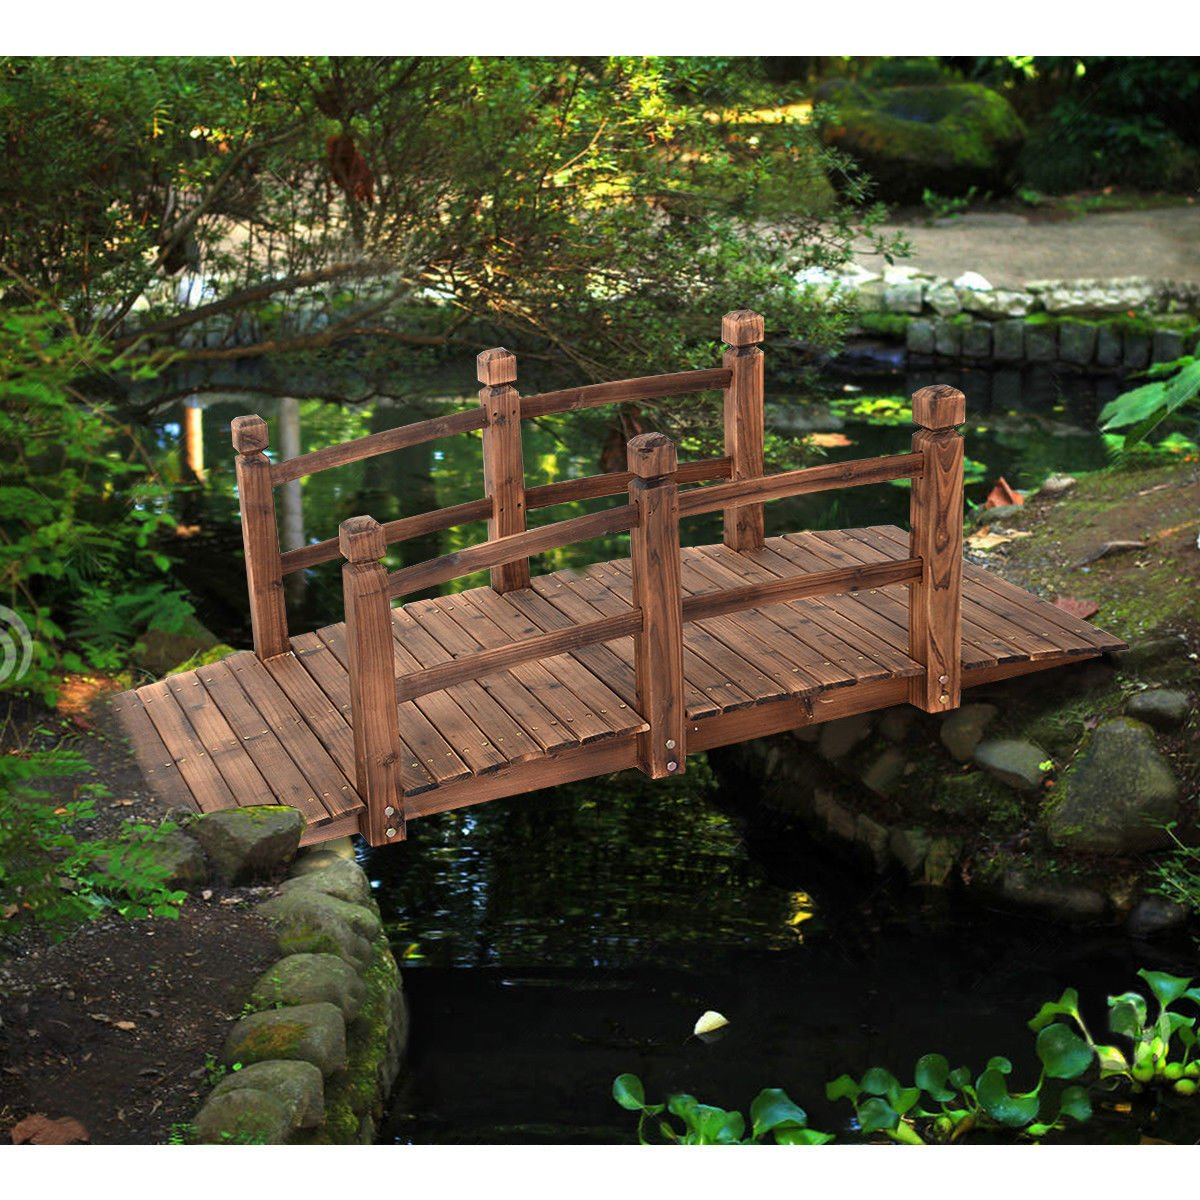 Giantex 5 Garden Bridge Wooden Decorative Pond Bridge Arch Walkway w/ Railings